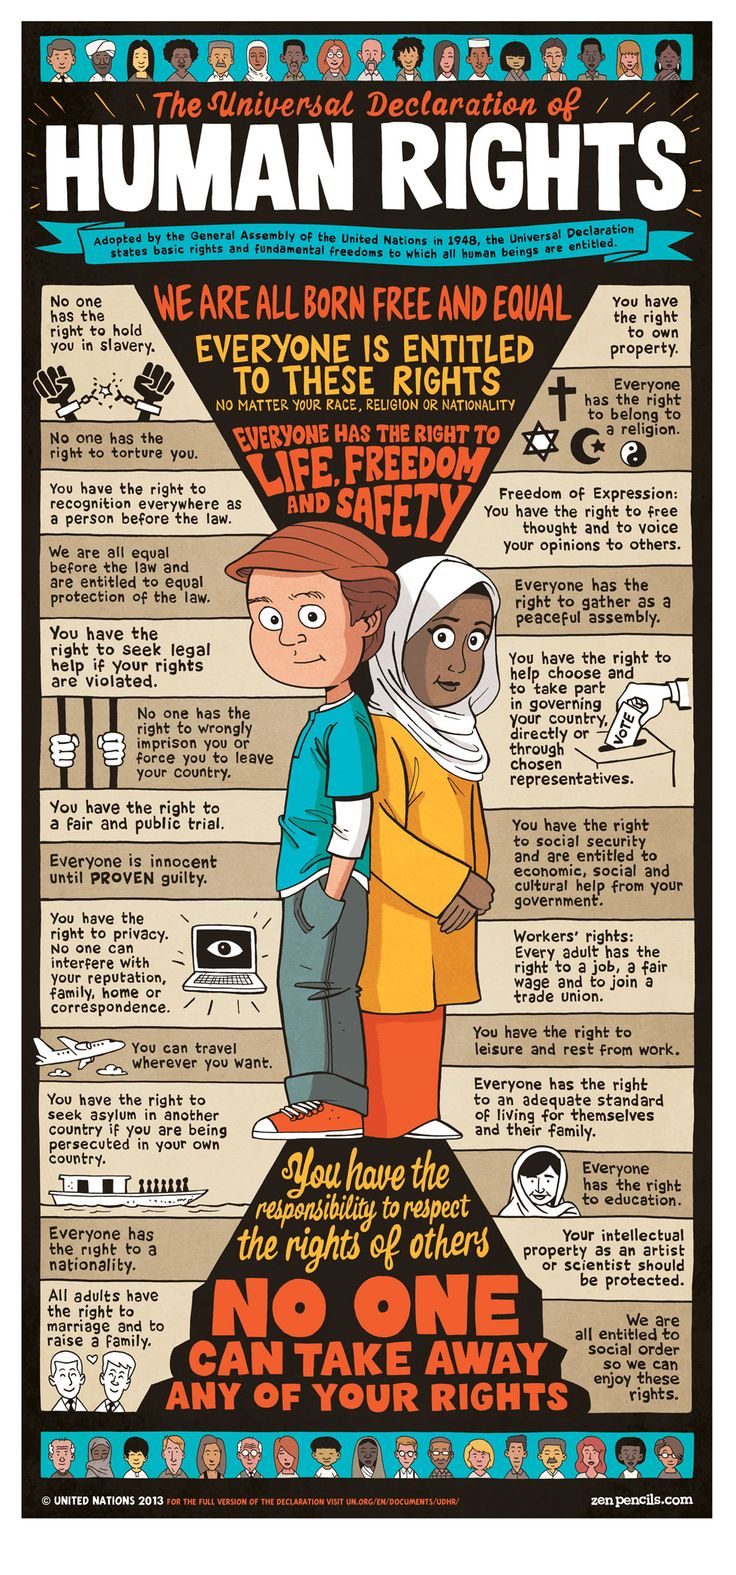 134. The Universal Declaration of Human Rights